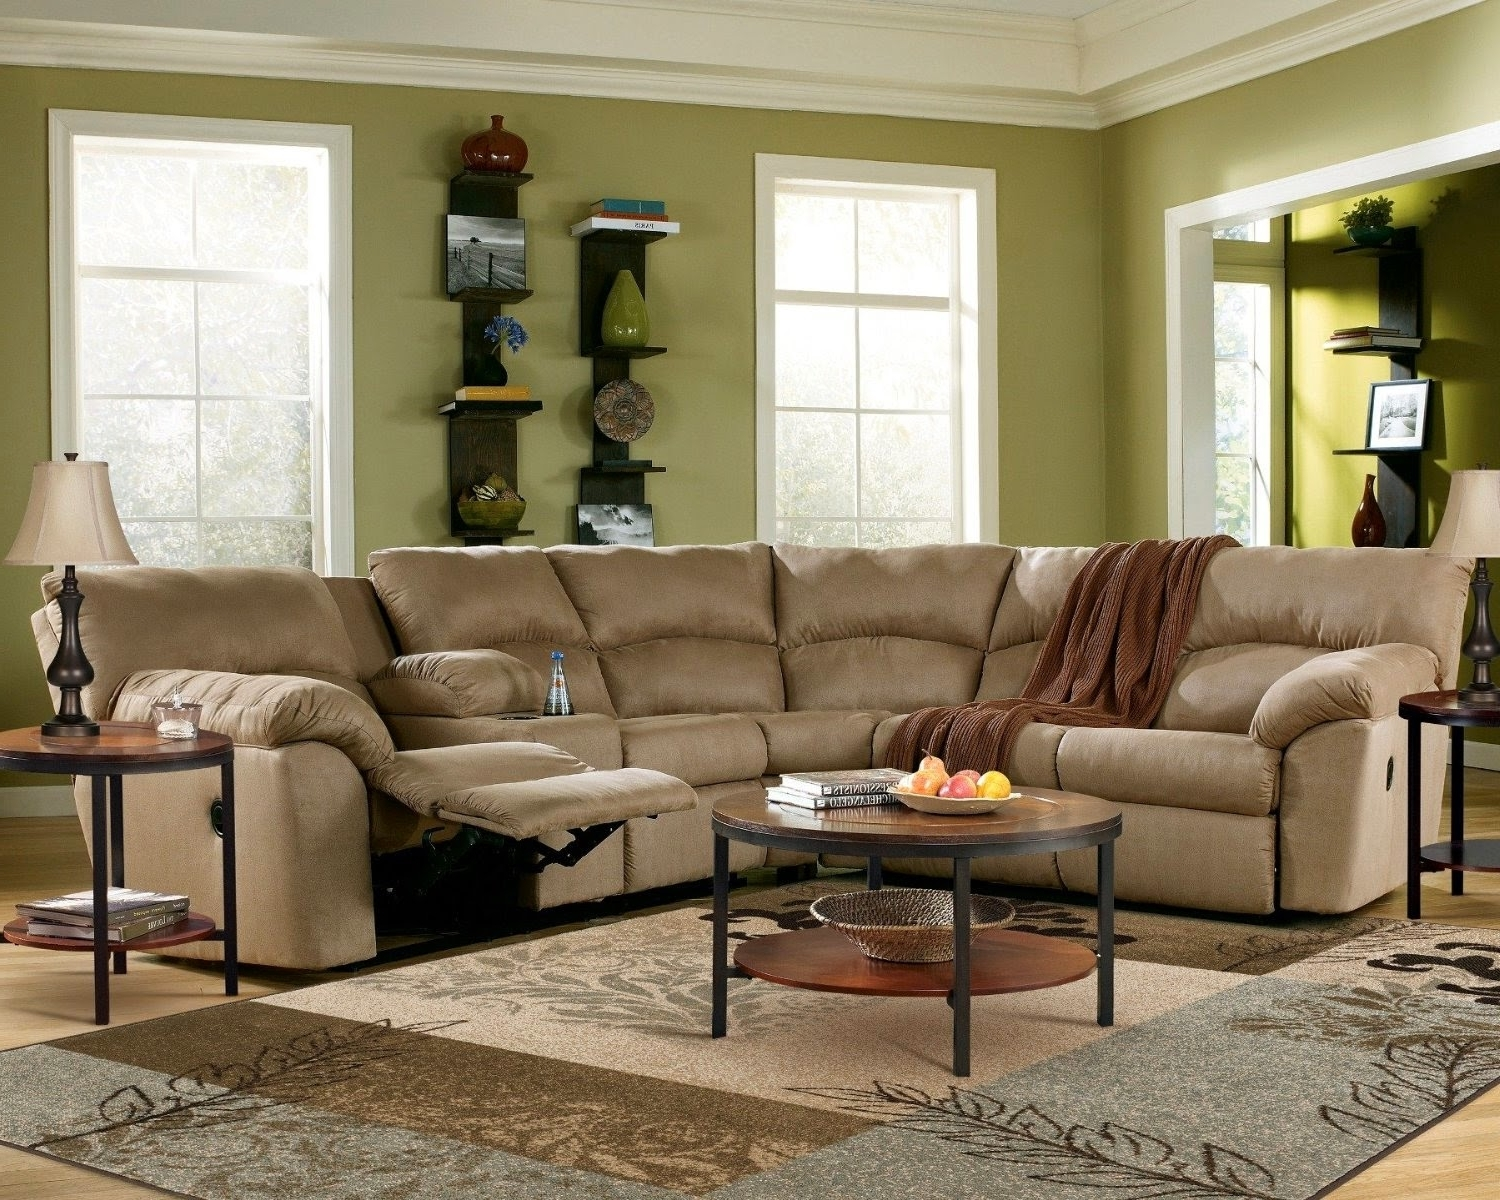 Small Contemporary Recliners Curved Sectional Sofa With Recliners With Newest Curved Sectional Sofas With Recliner (View 17 of 20)